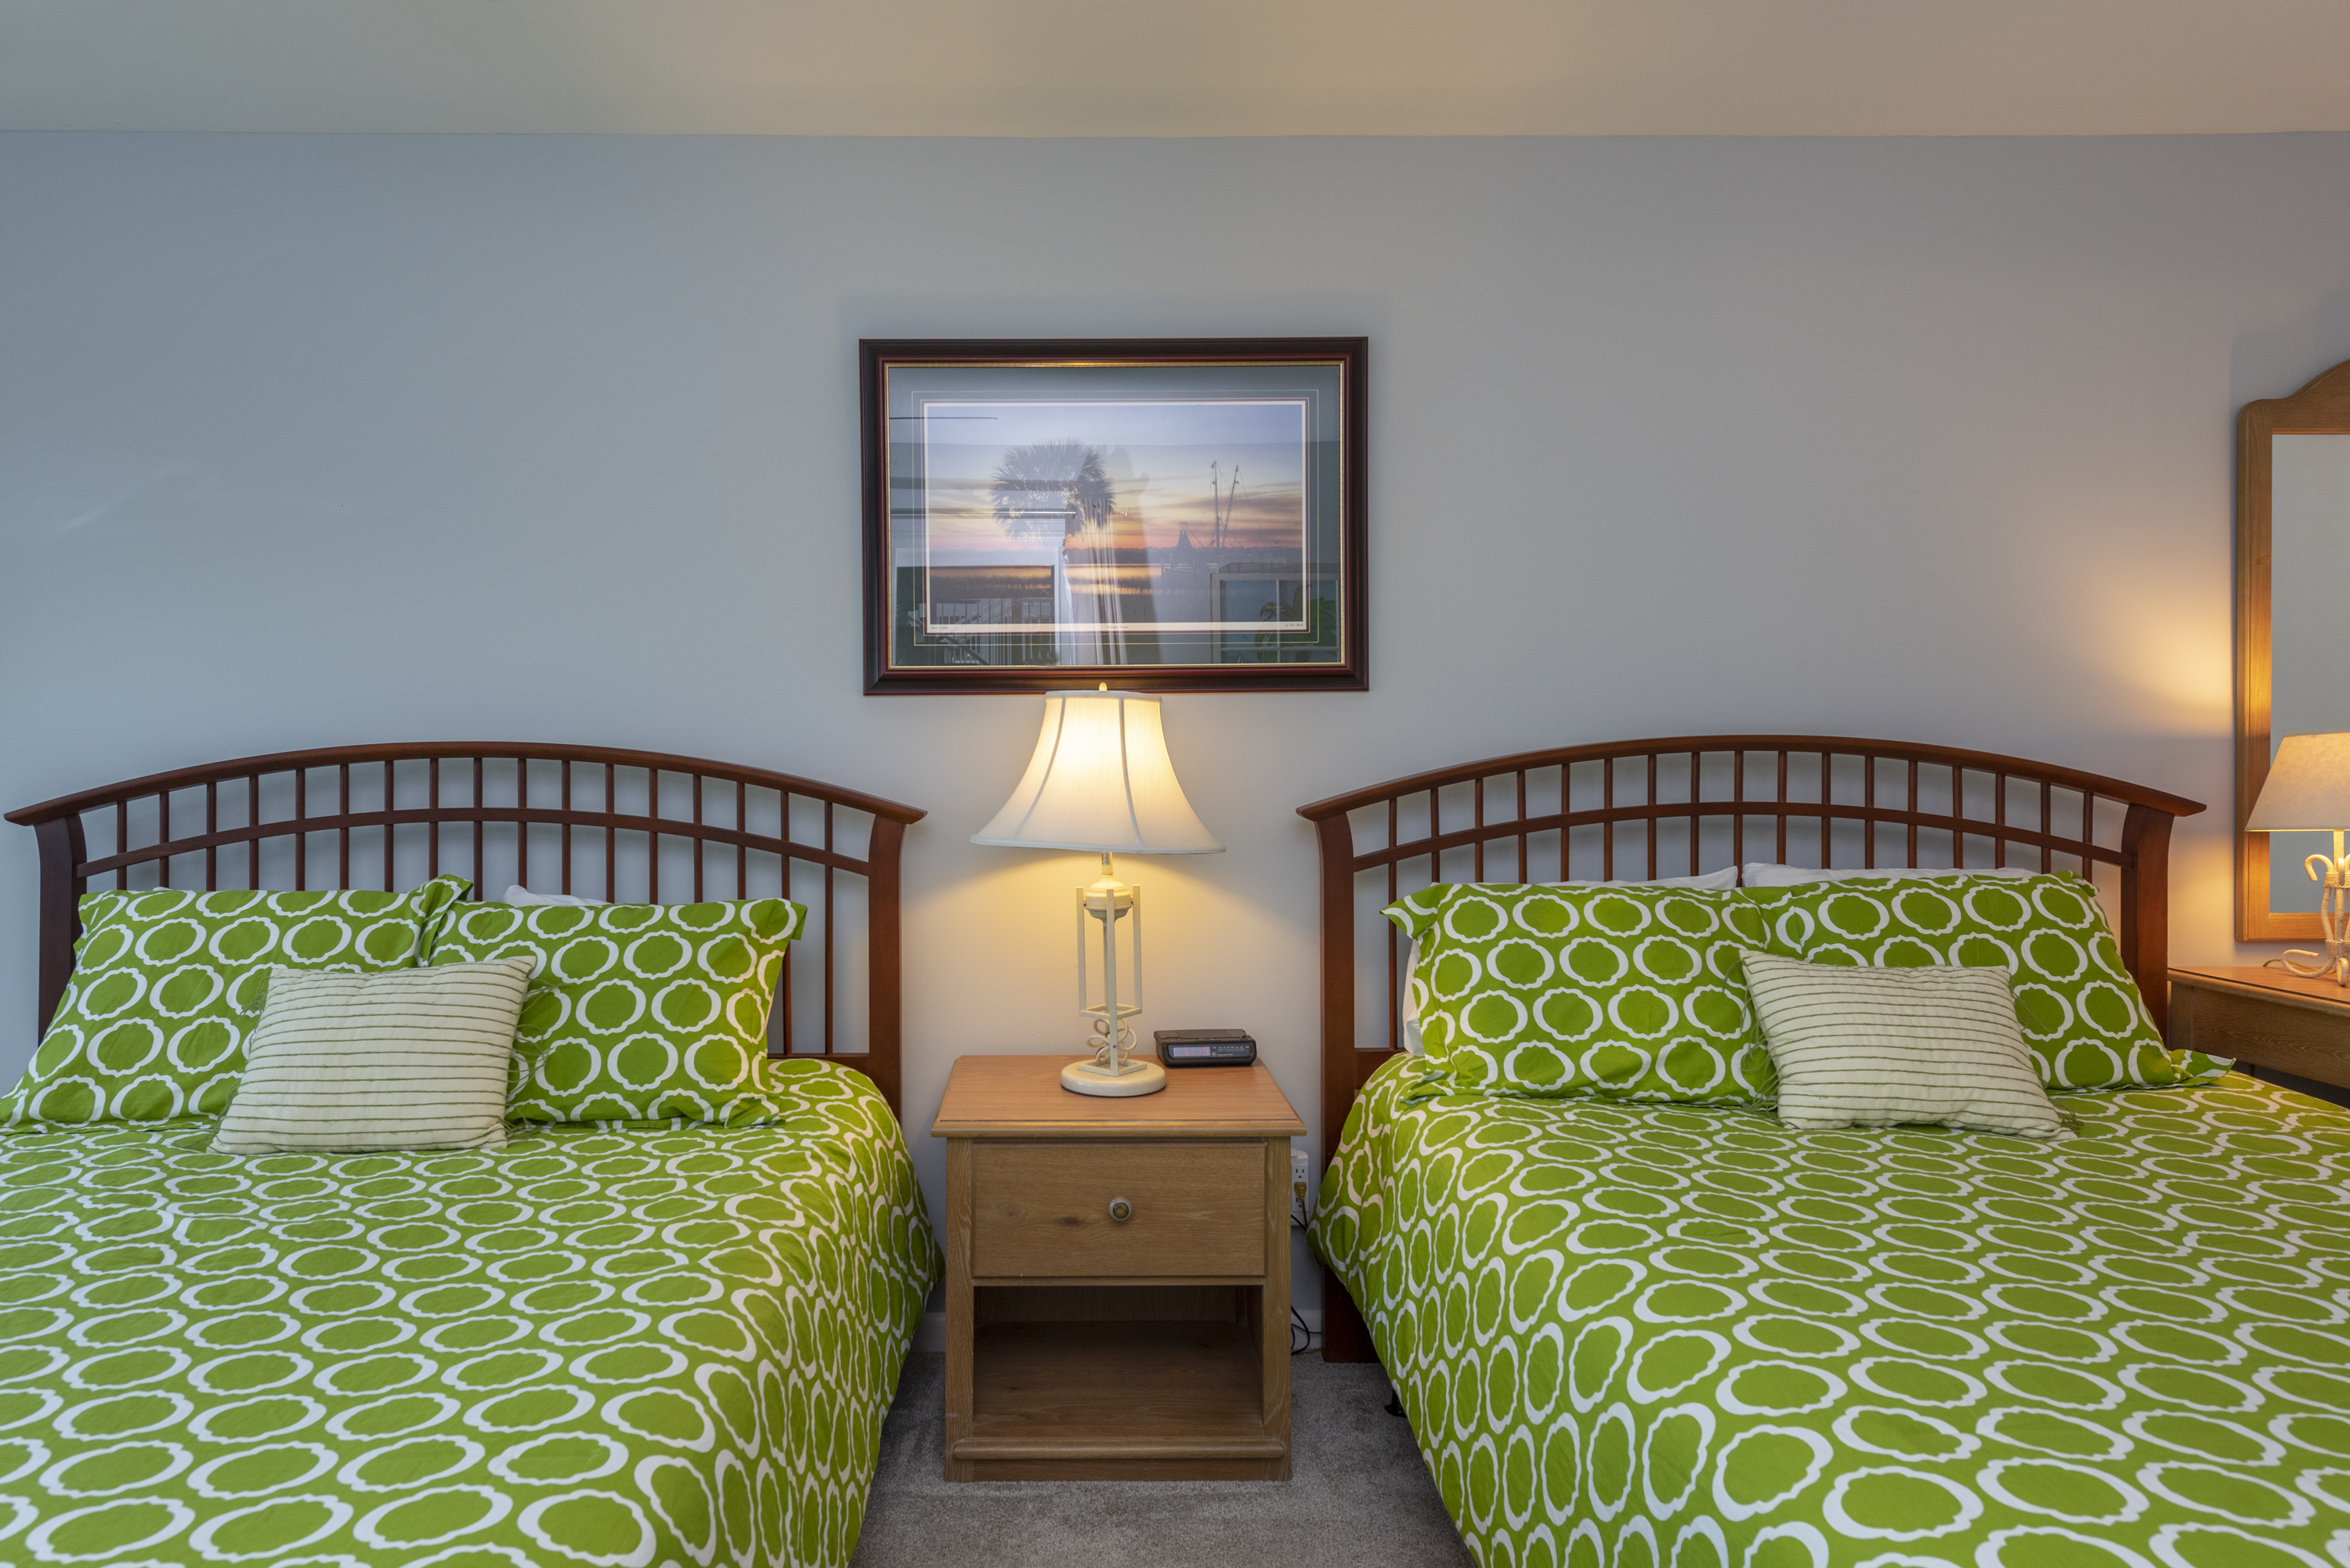 It has two queen beds and sliders leading to the covered patio.